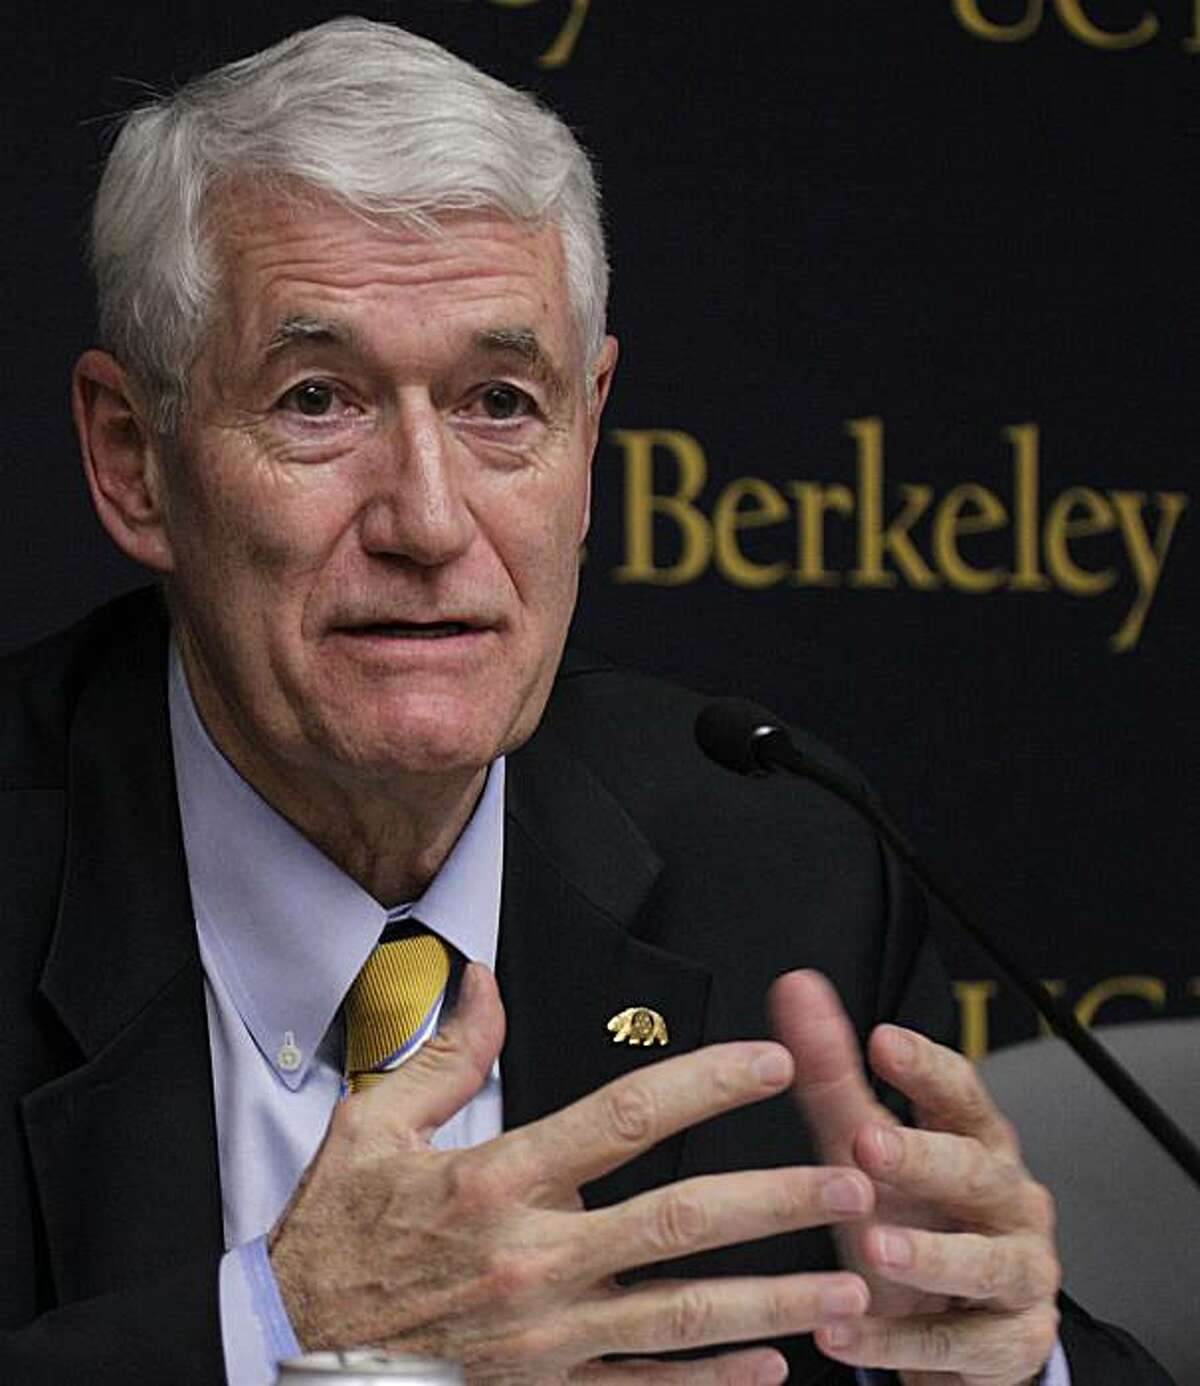 University of California at Berkeley Chancellor Robert Birgeneau gestures during a news conference Tuesday, Sept. 28, 2010, in Berkeley, Calif. In its latest move to cut costs, the University of California, Berkeley, is eliminating five of its intercollegiate sports programs, including its championship men's rugby team, officials said Tuesday. Cal's baseball, men's and women's gymnastics, and women's lacrosse teams will no longer represent the university in intercollegiate competition after this academicyear, officials said. The men's rugby team, which has won 25 national championships since 1980, will move into a new category called